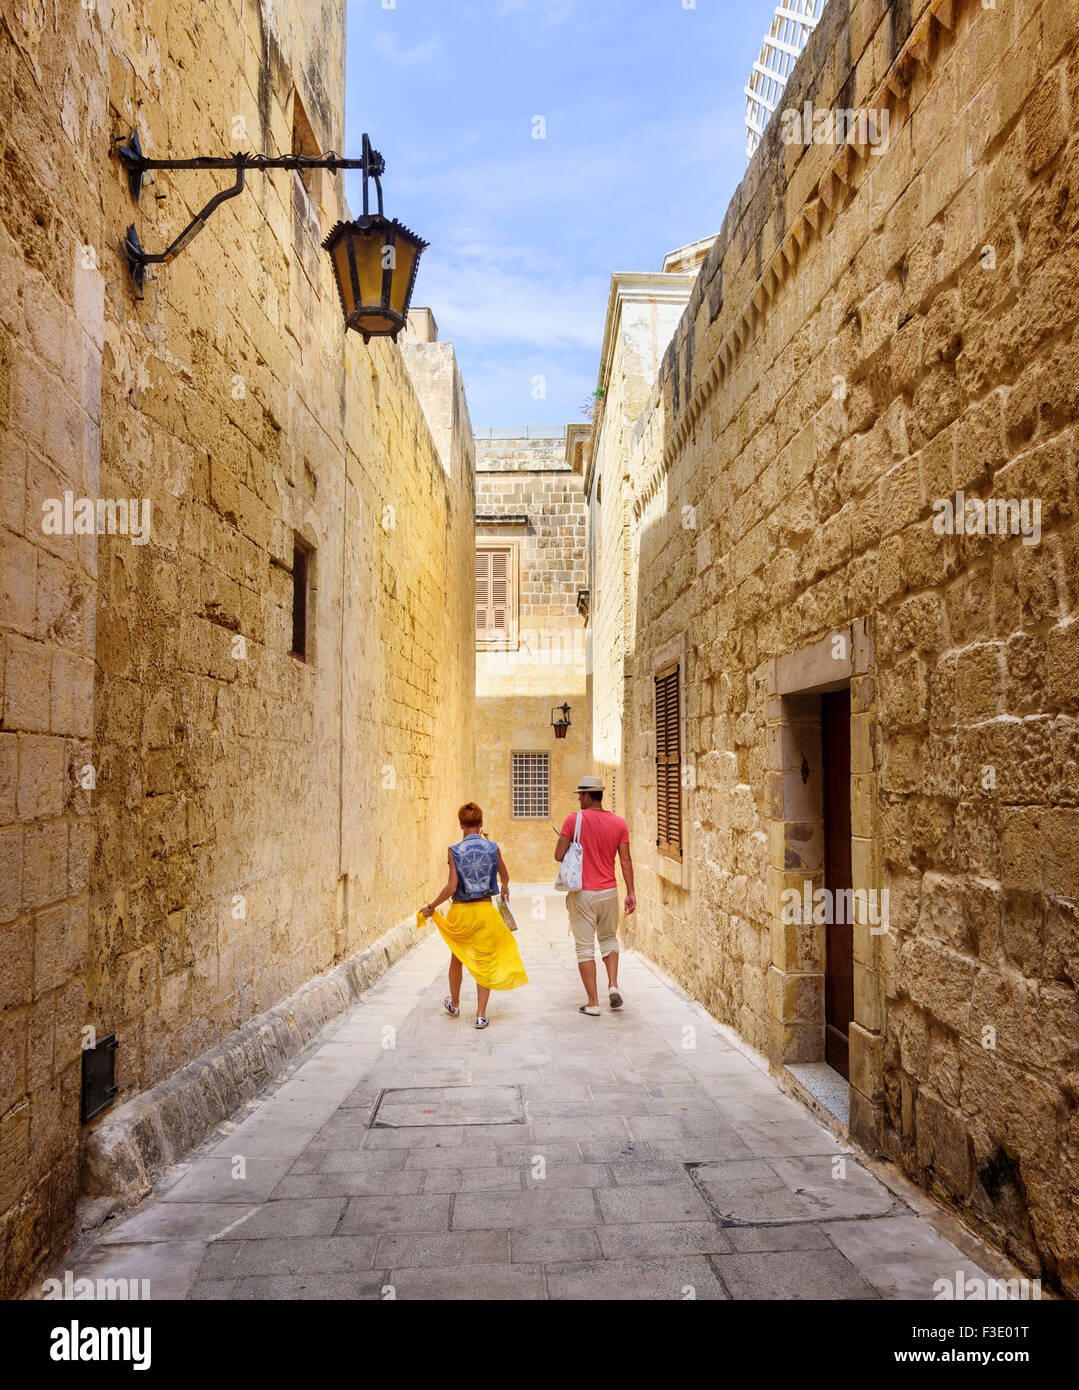 A quiet backstreet in Mdina, Malta - Stock Image